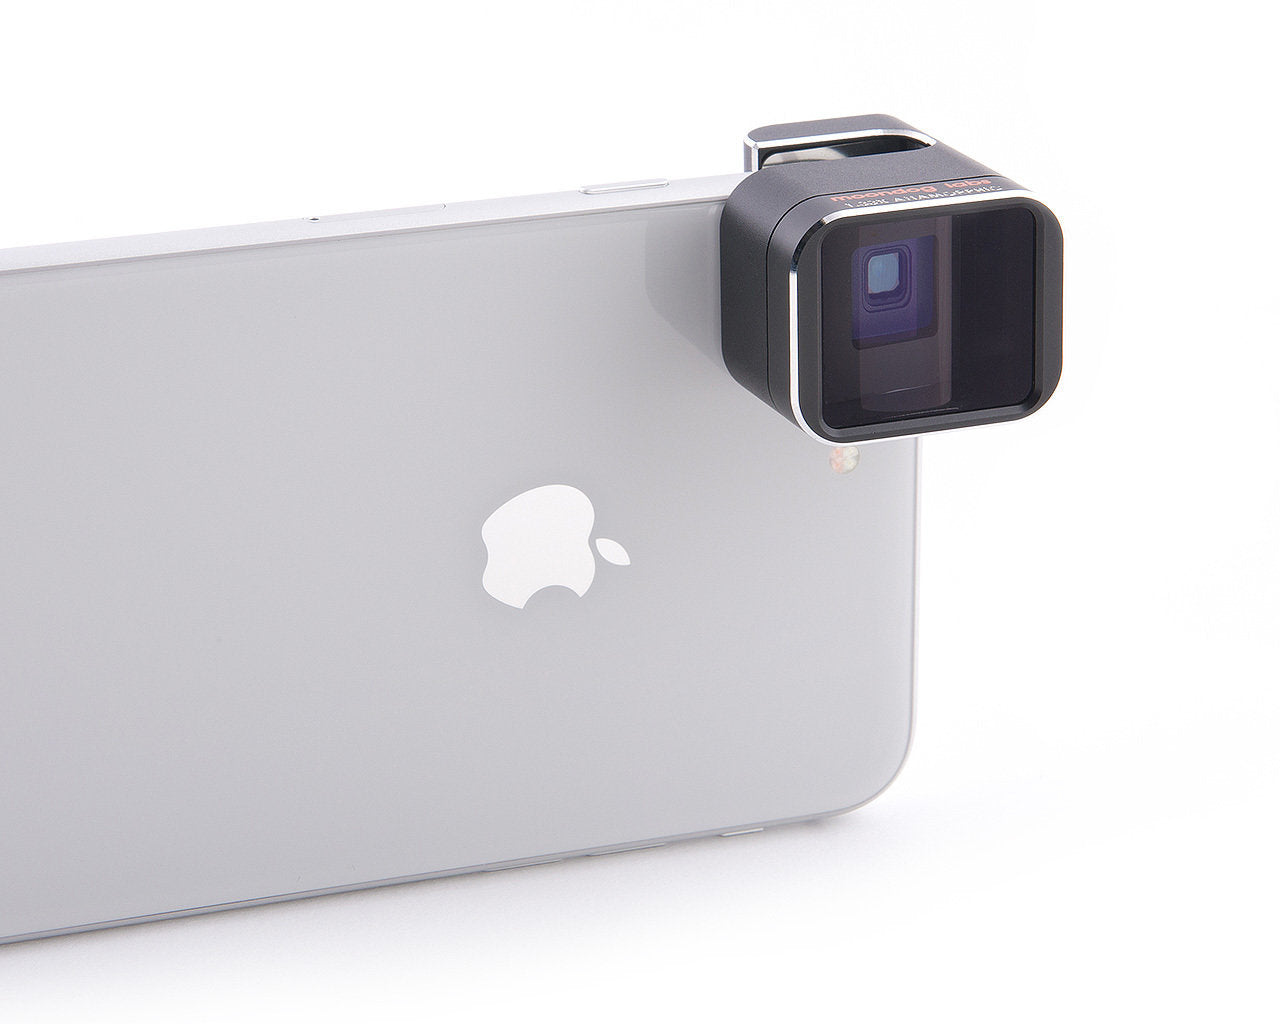 low priced f04eb 47752 1.33X Anamorphic Lens for iPhone 7+